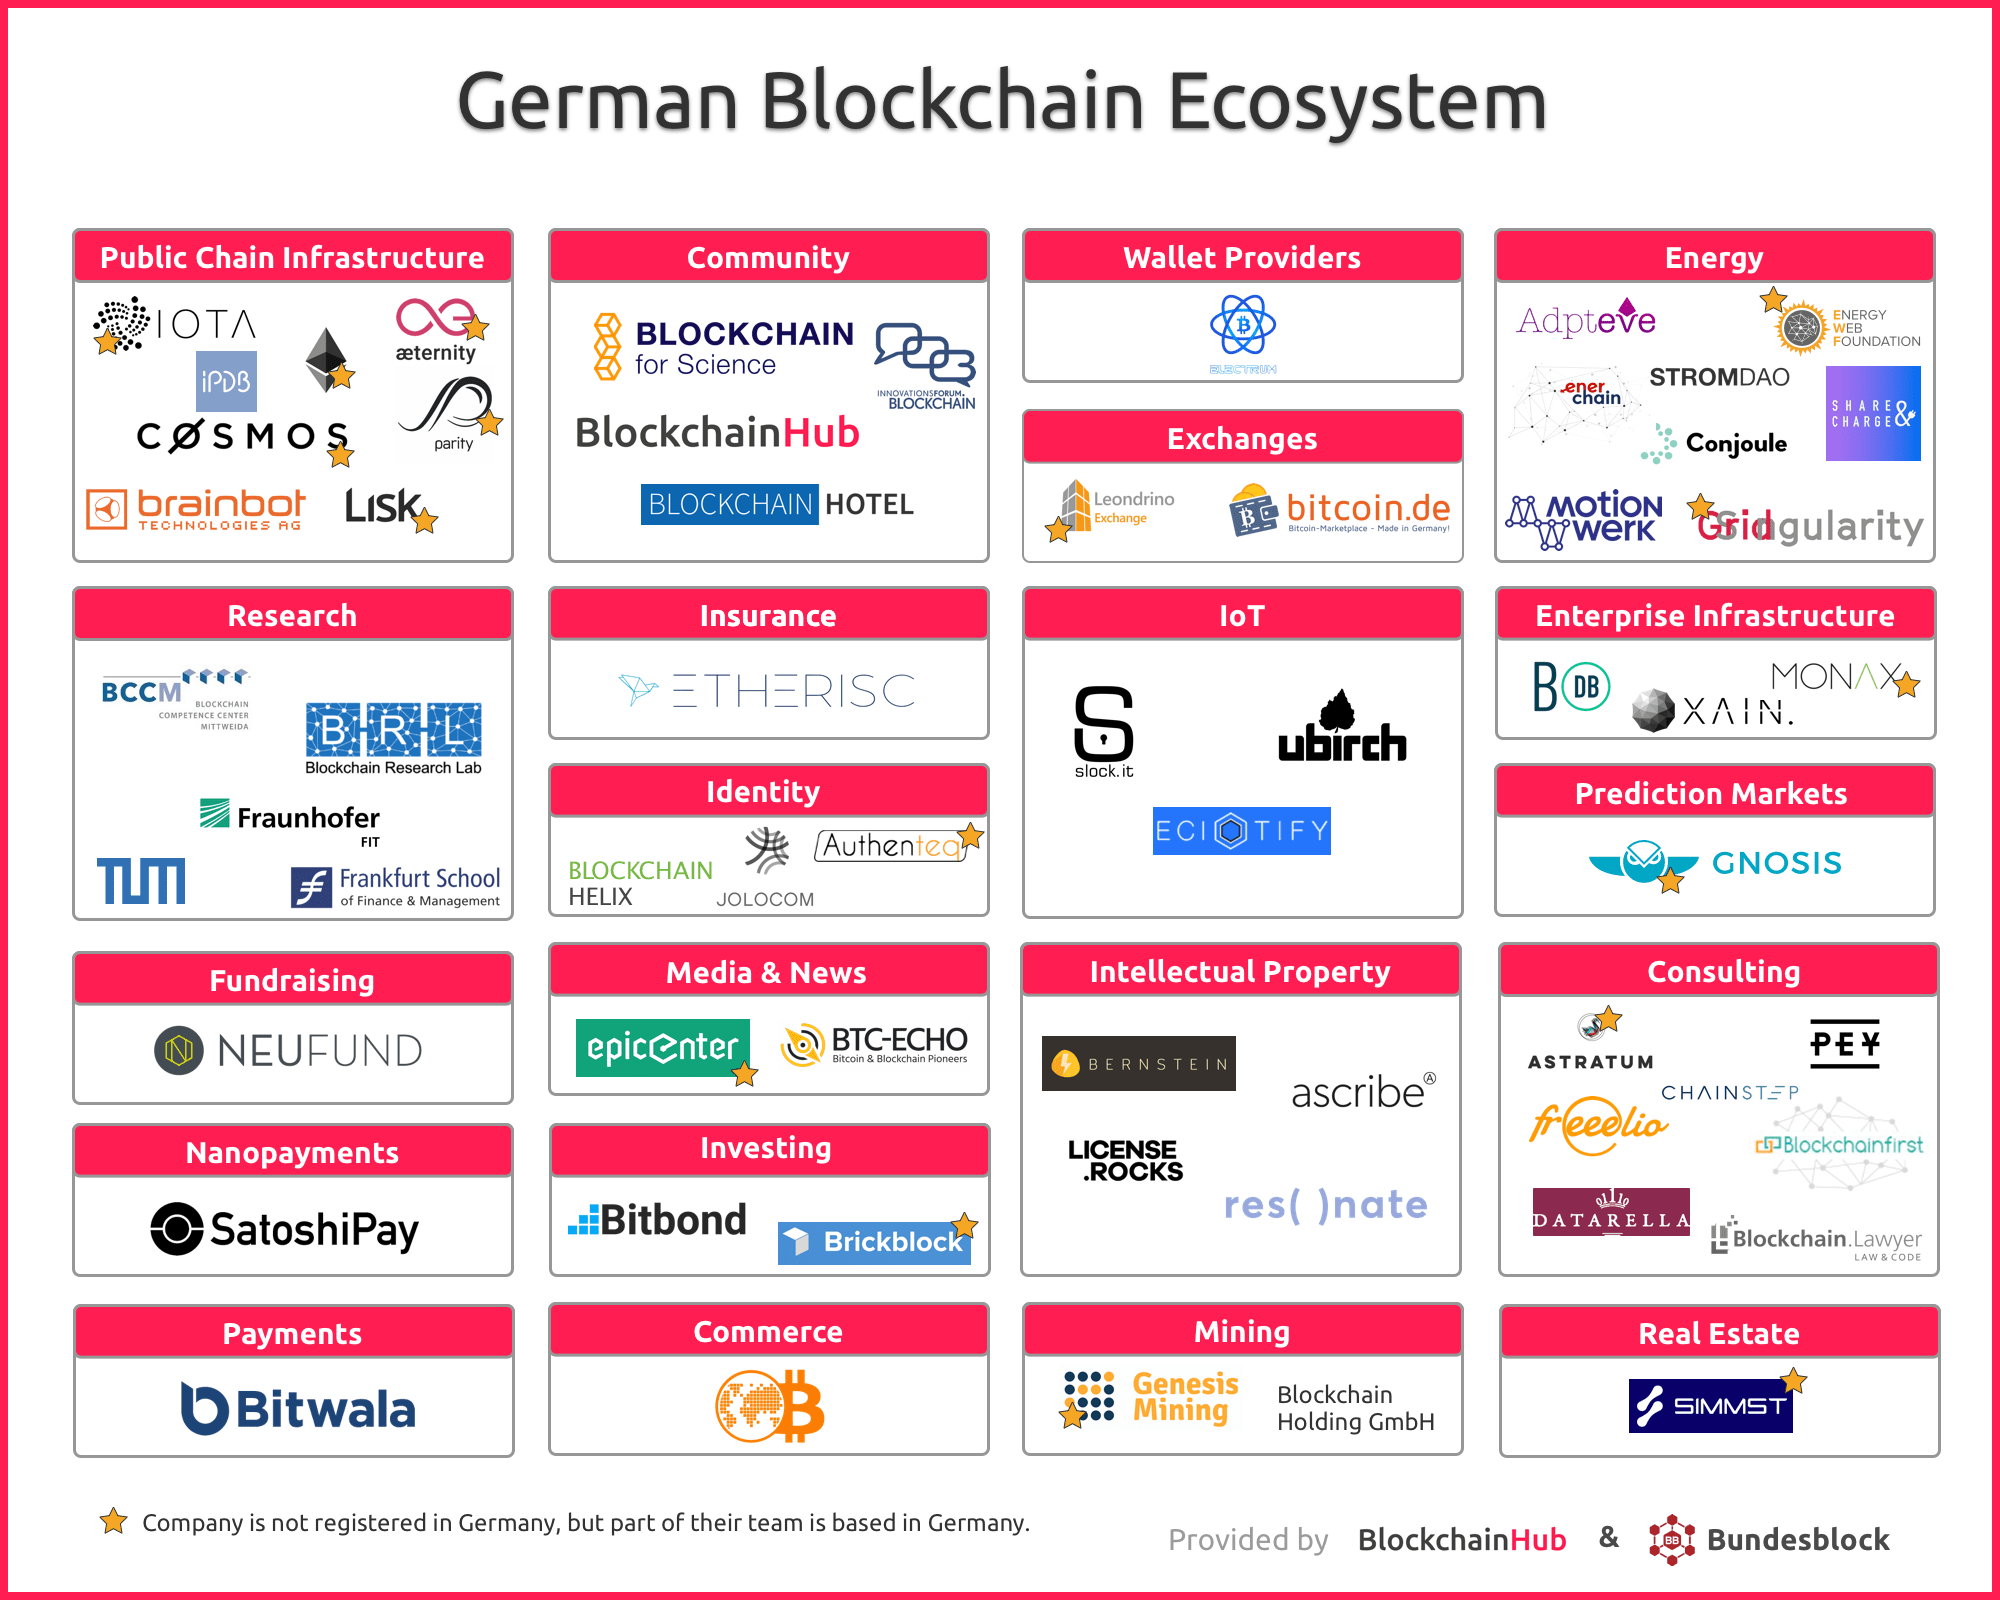 The German Blockchain Ecosystem Map Infographic